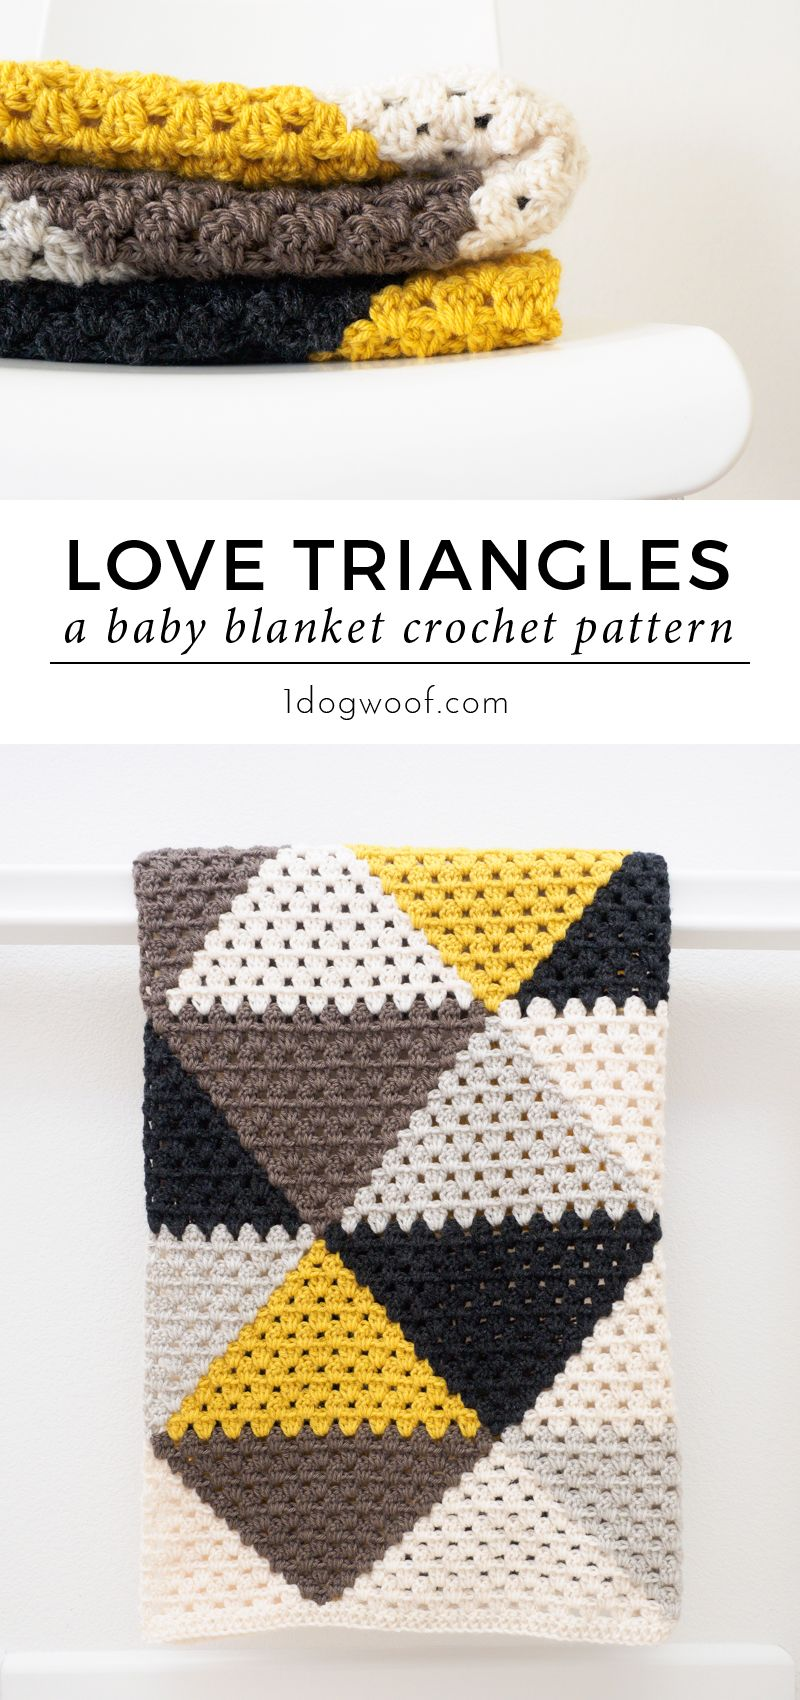 Love Triangles Granny Stripe Baby Blanket | Manta, Ganchillo y Tejido